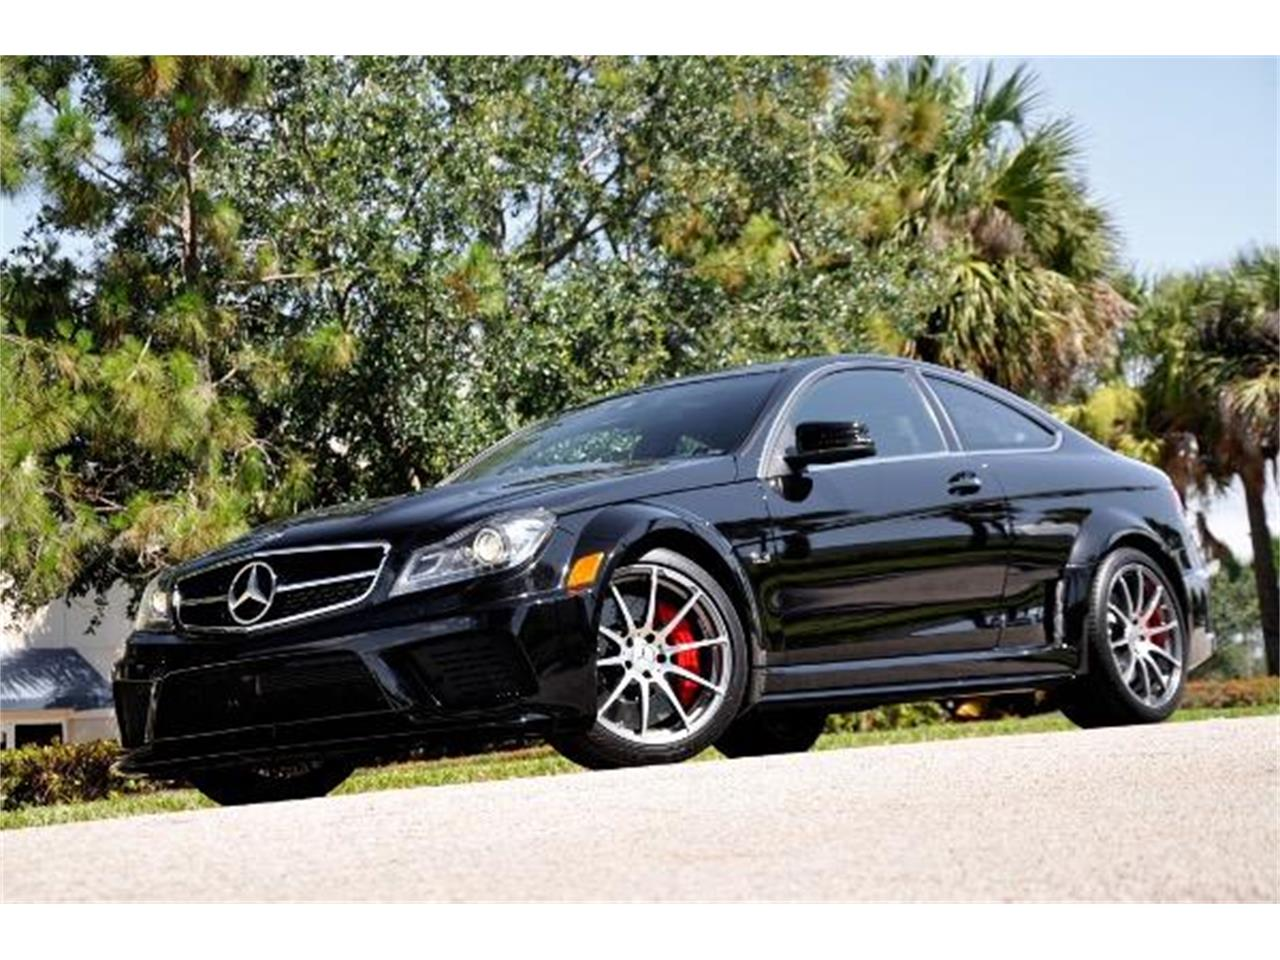 2013 Mercedes-Benz C63 AMG for sale in West Palm Beach, FL – photo 61